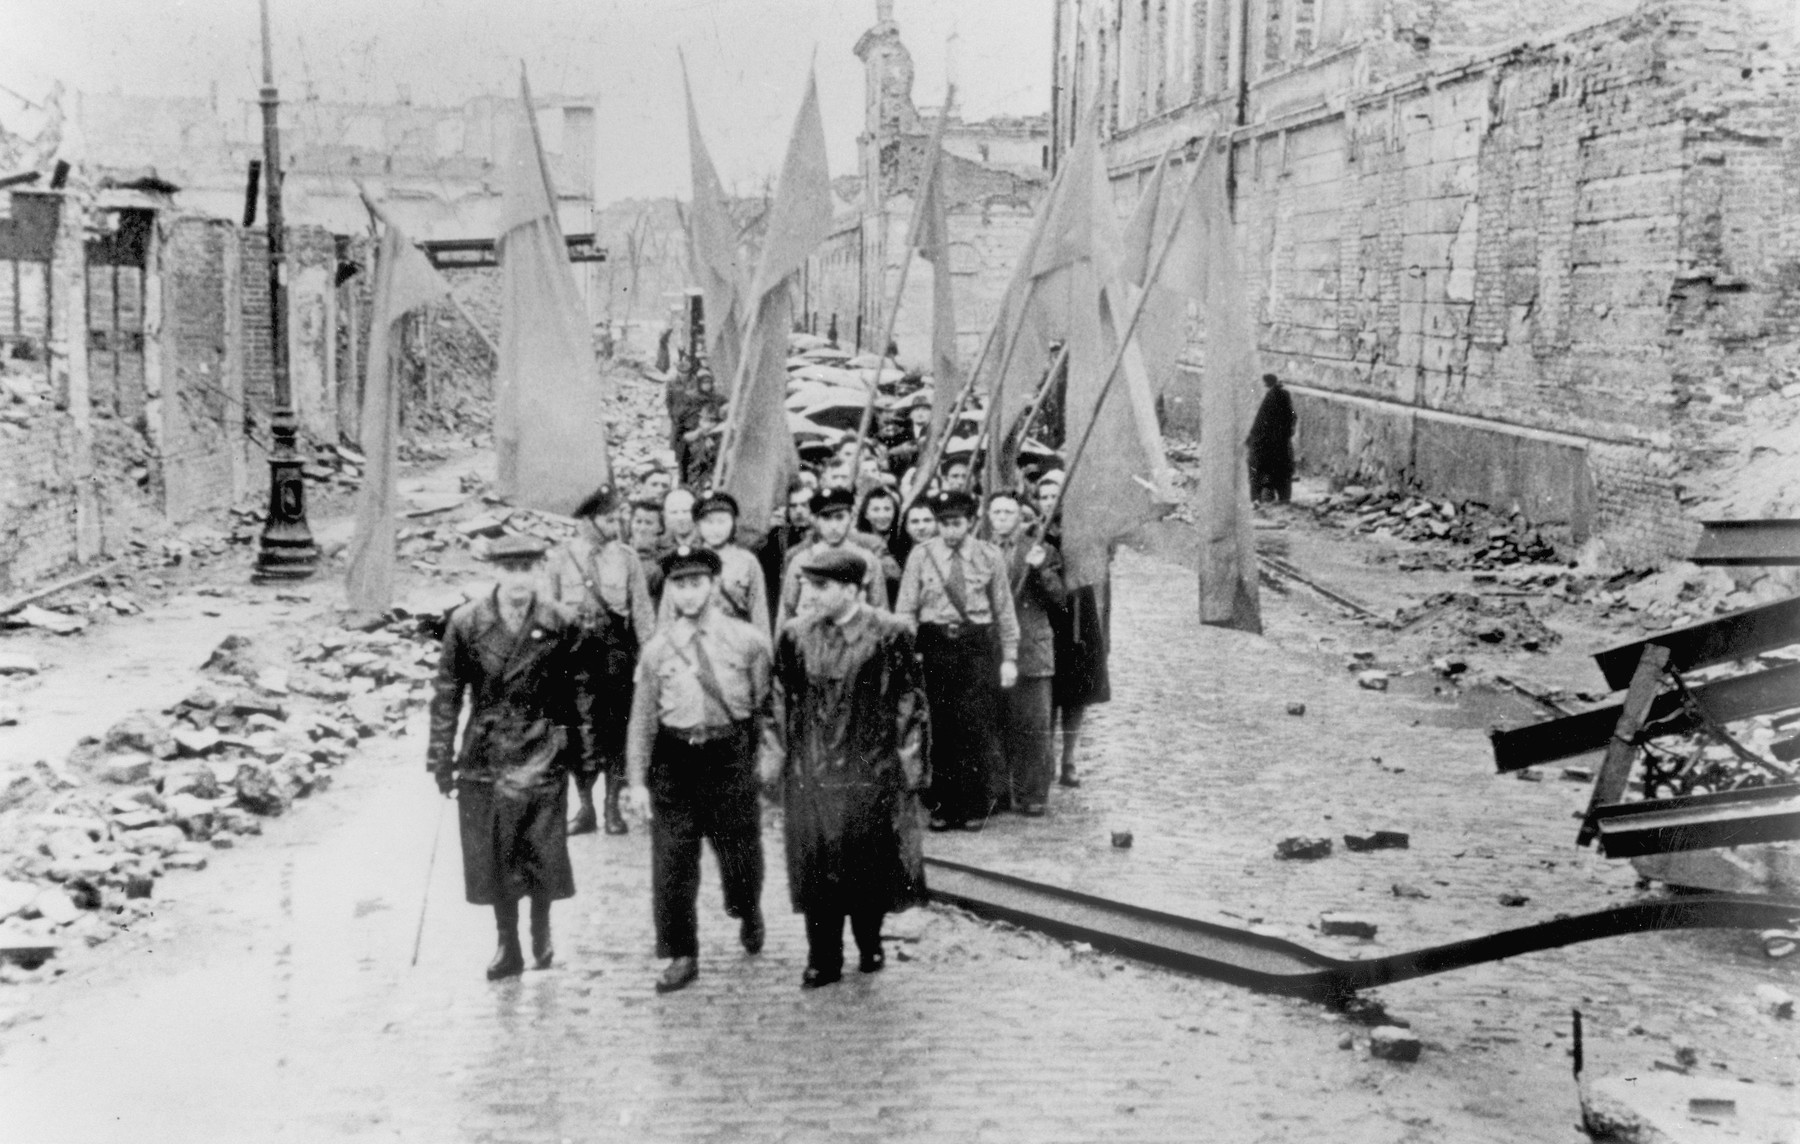 Jewish survivors carrying flags march along Bielanska Street [probably during a demonstration marking the fourth anniversary of the Warsaw ghetto uprising].   The marchers are probably members of the Betar revisionist Zionist movement.